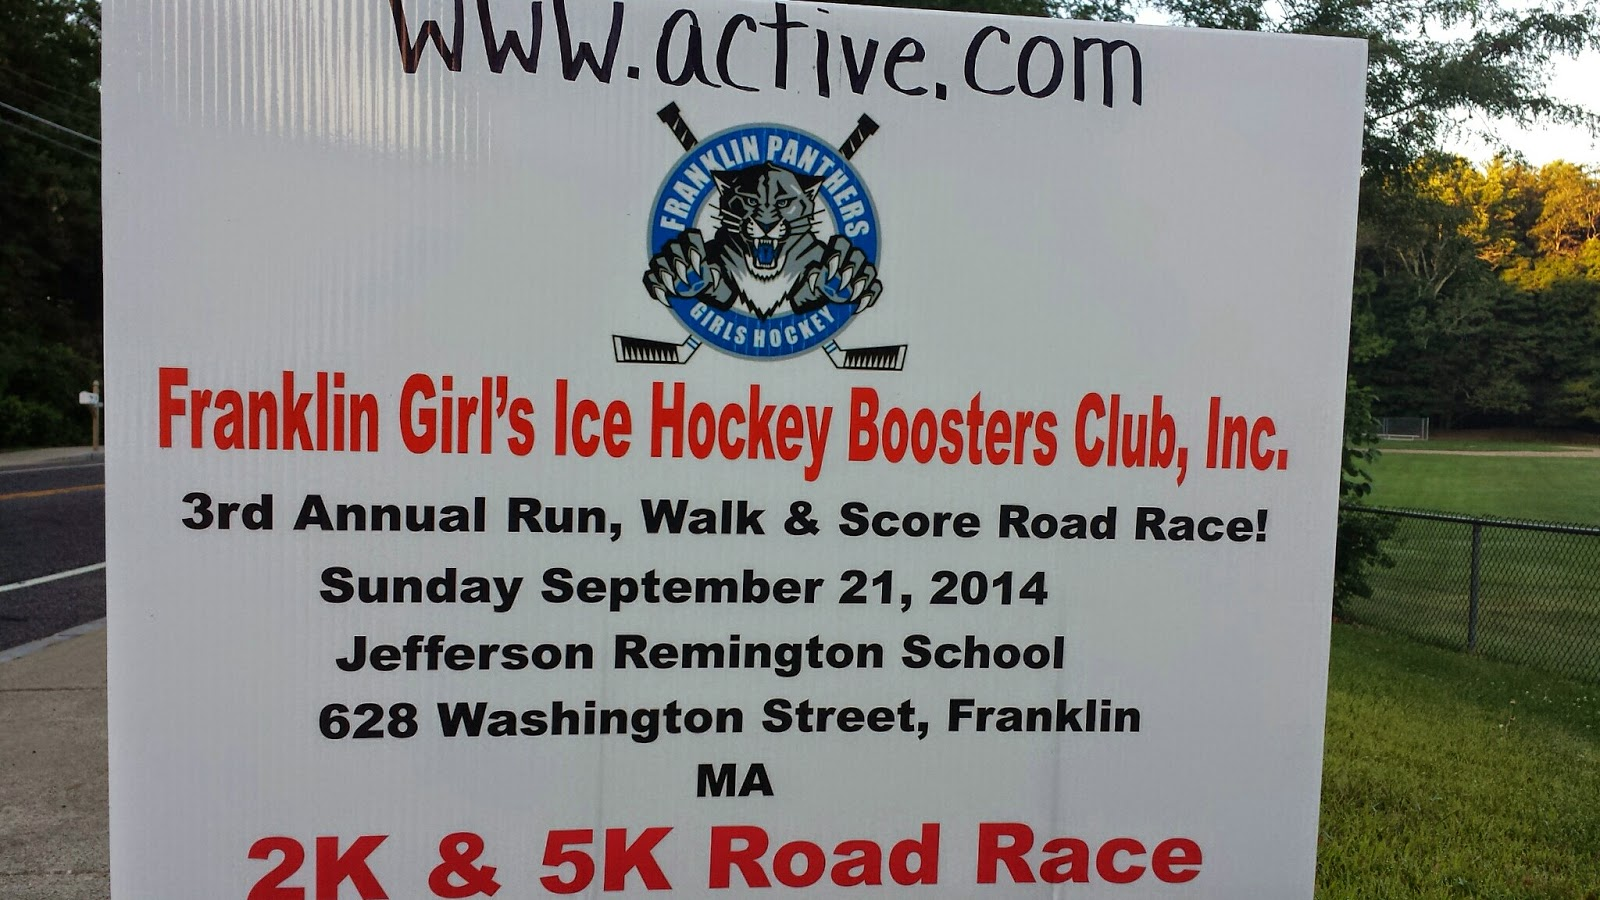 3rd annual Run, Walk and Score Road Race - Sep 21